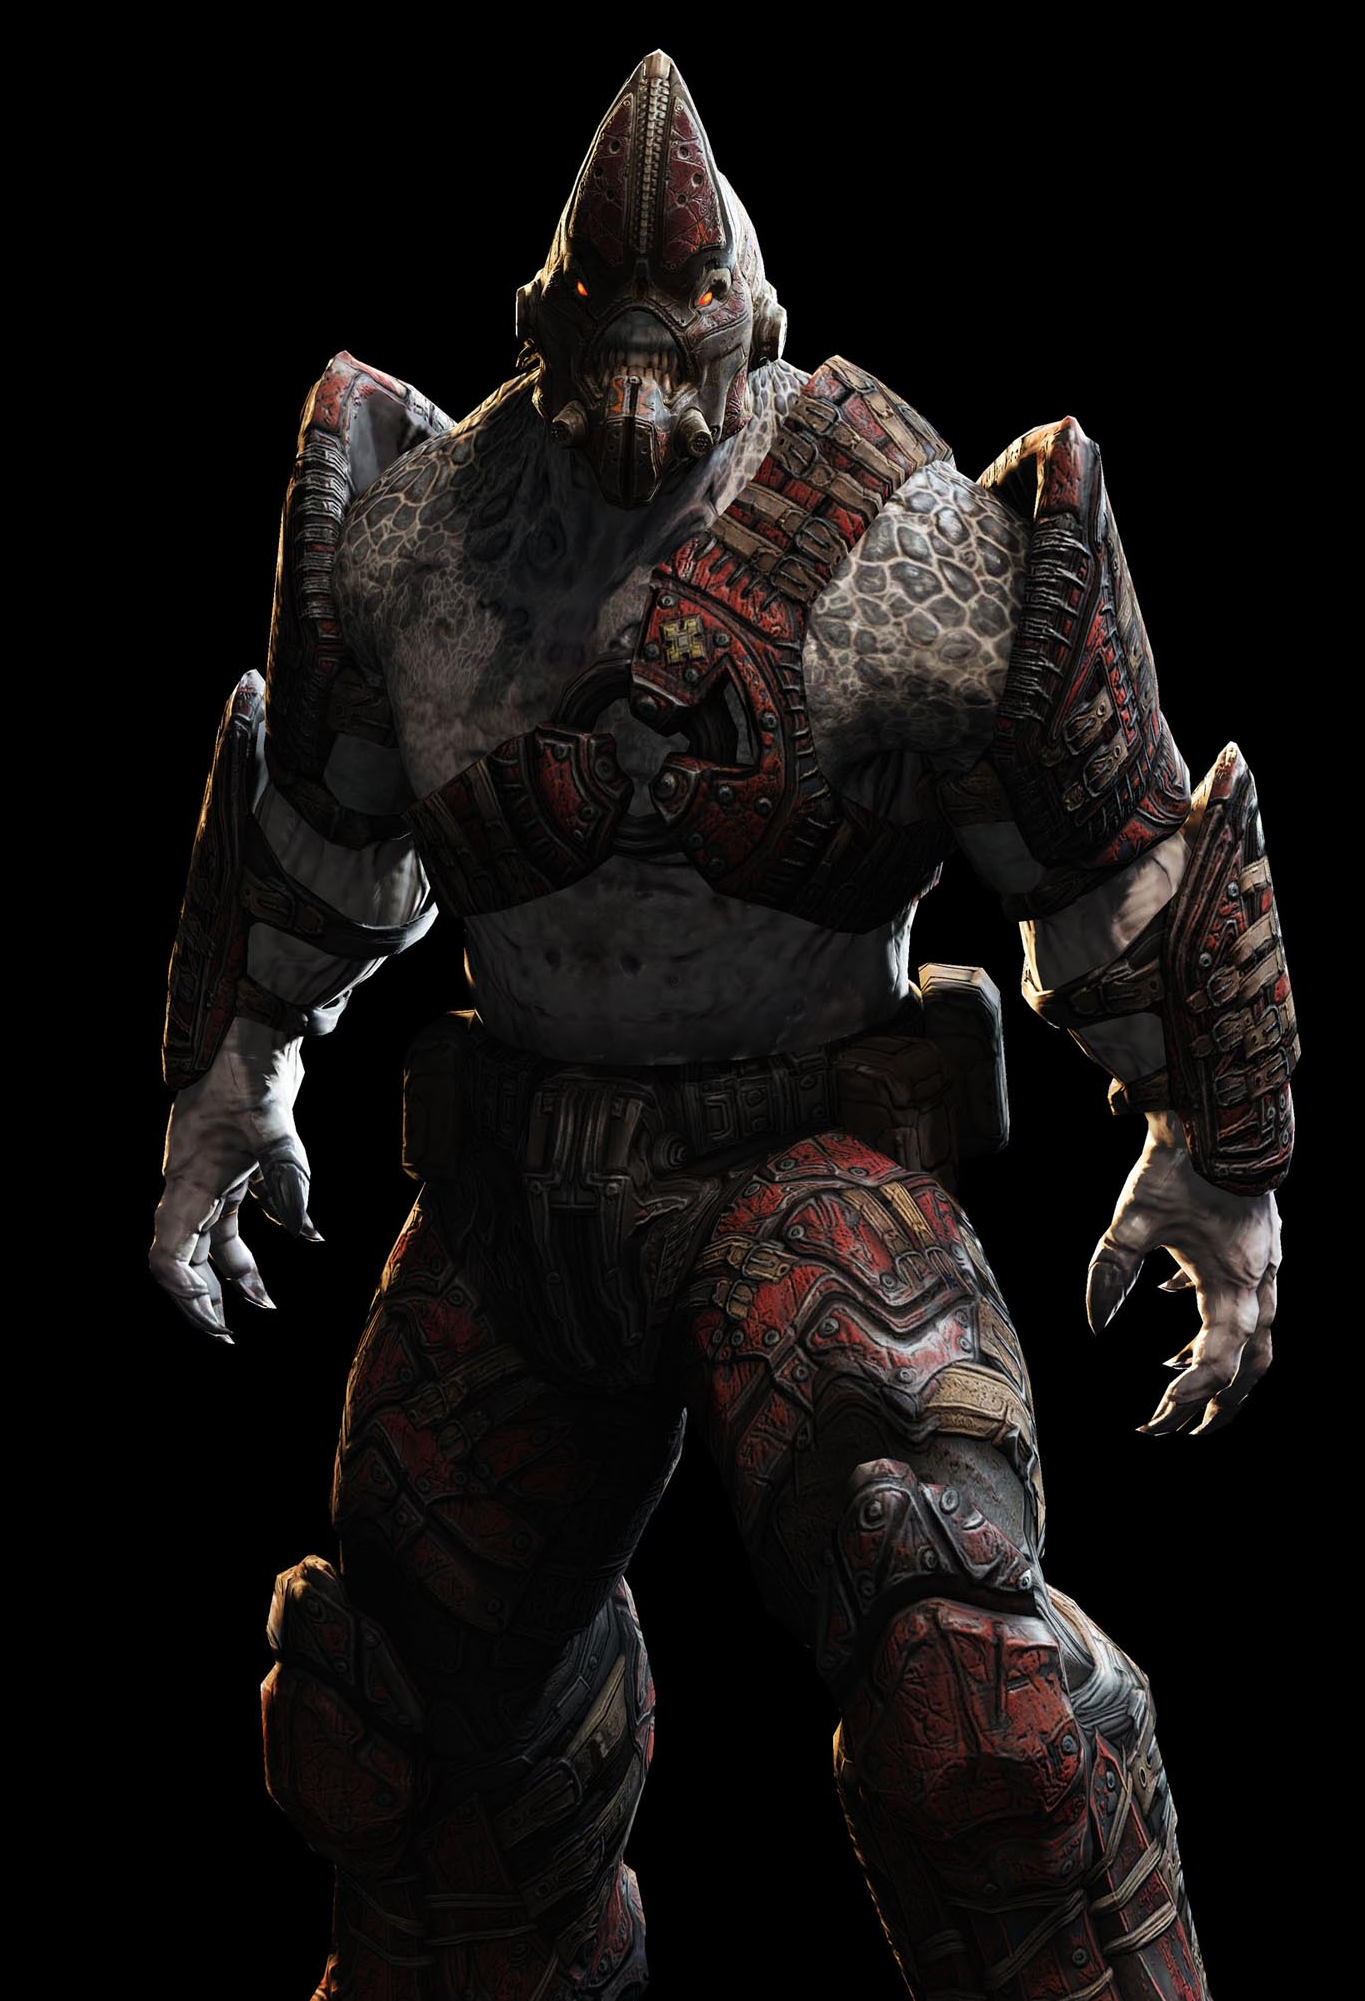 gears of war drones with Hunter on Theron Guard furthermore Gears of war 3 characters additionally Fws Forgotten Classics Star Wars in addition Hochaufloesende Singleplayer Screenshots Und Artworks besides Artofskar blogspot.